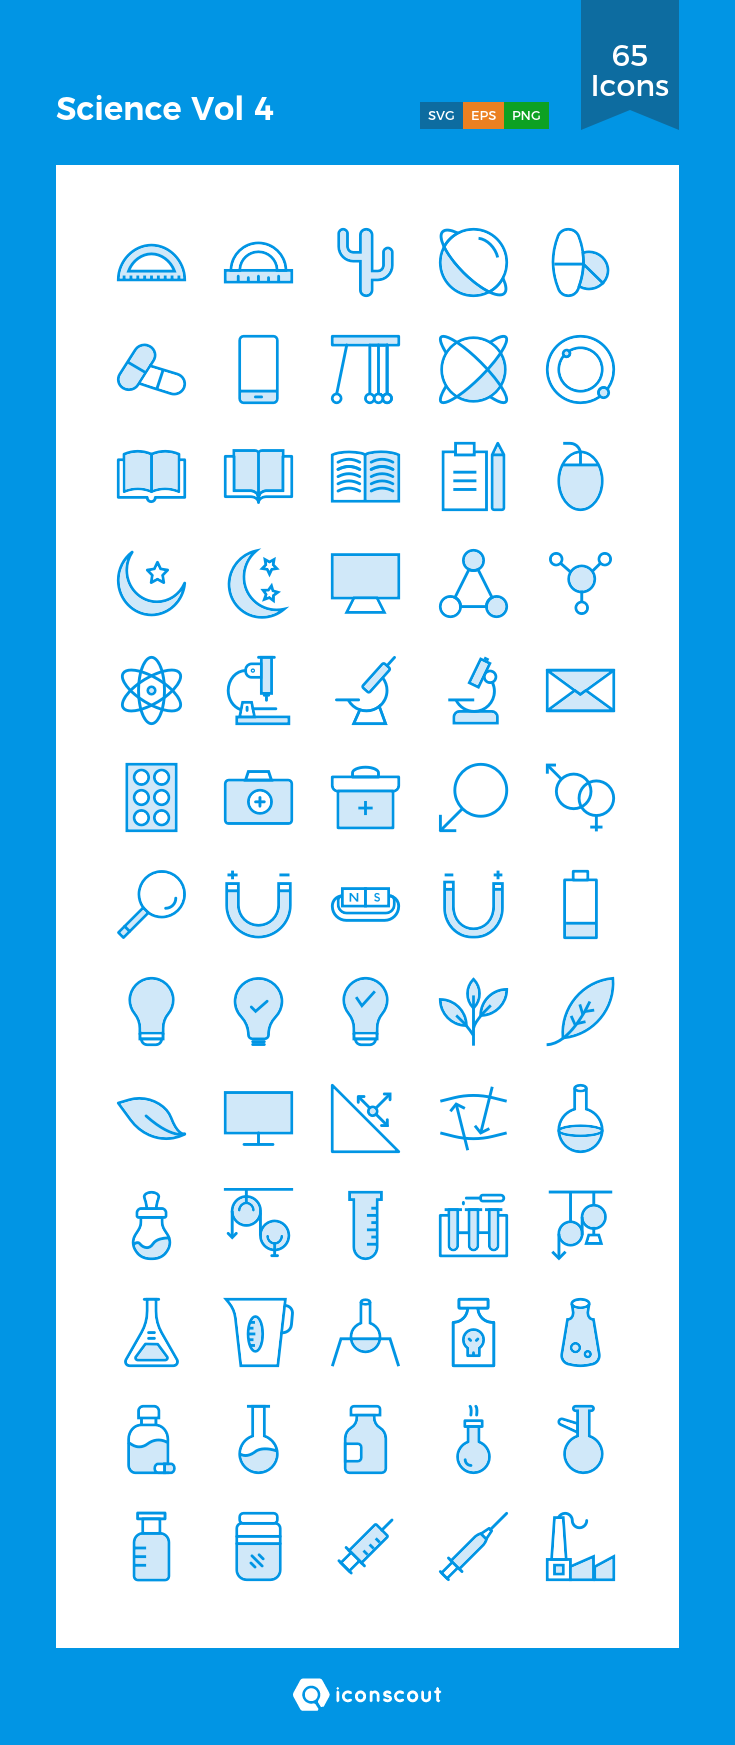 Download Science Vol 4 Icon Pack Available In Svg Png Eps Ai Icon Fonts Icon Icon Pack Icon Font